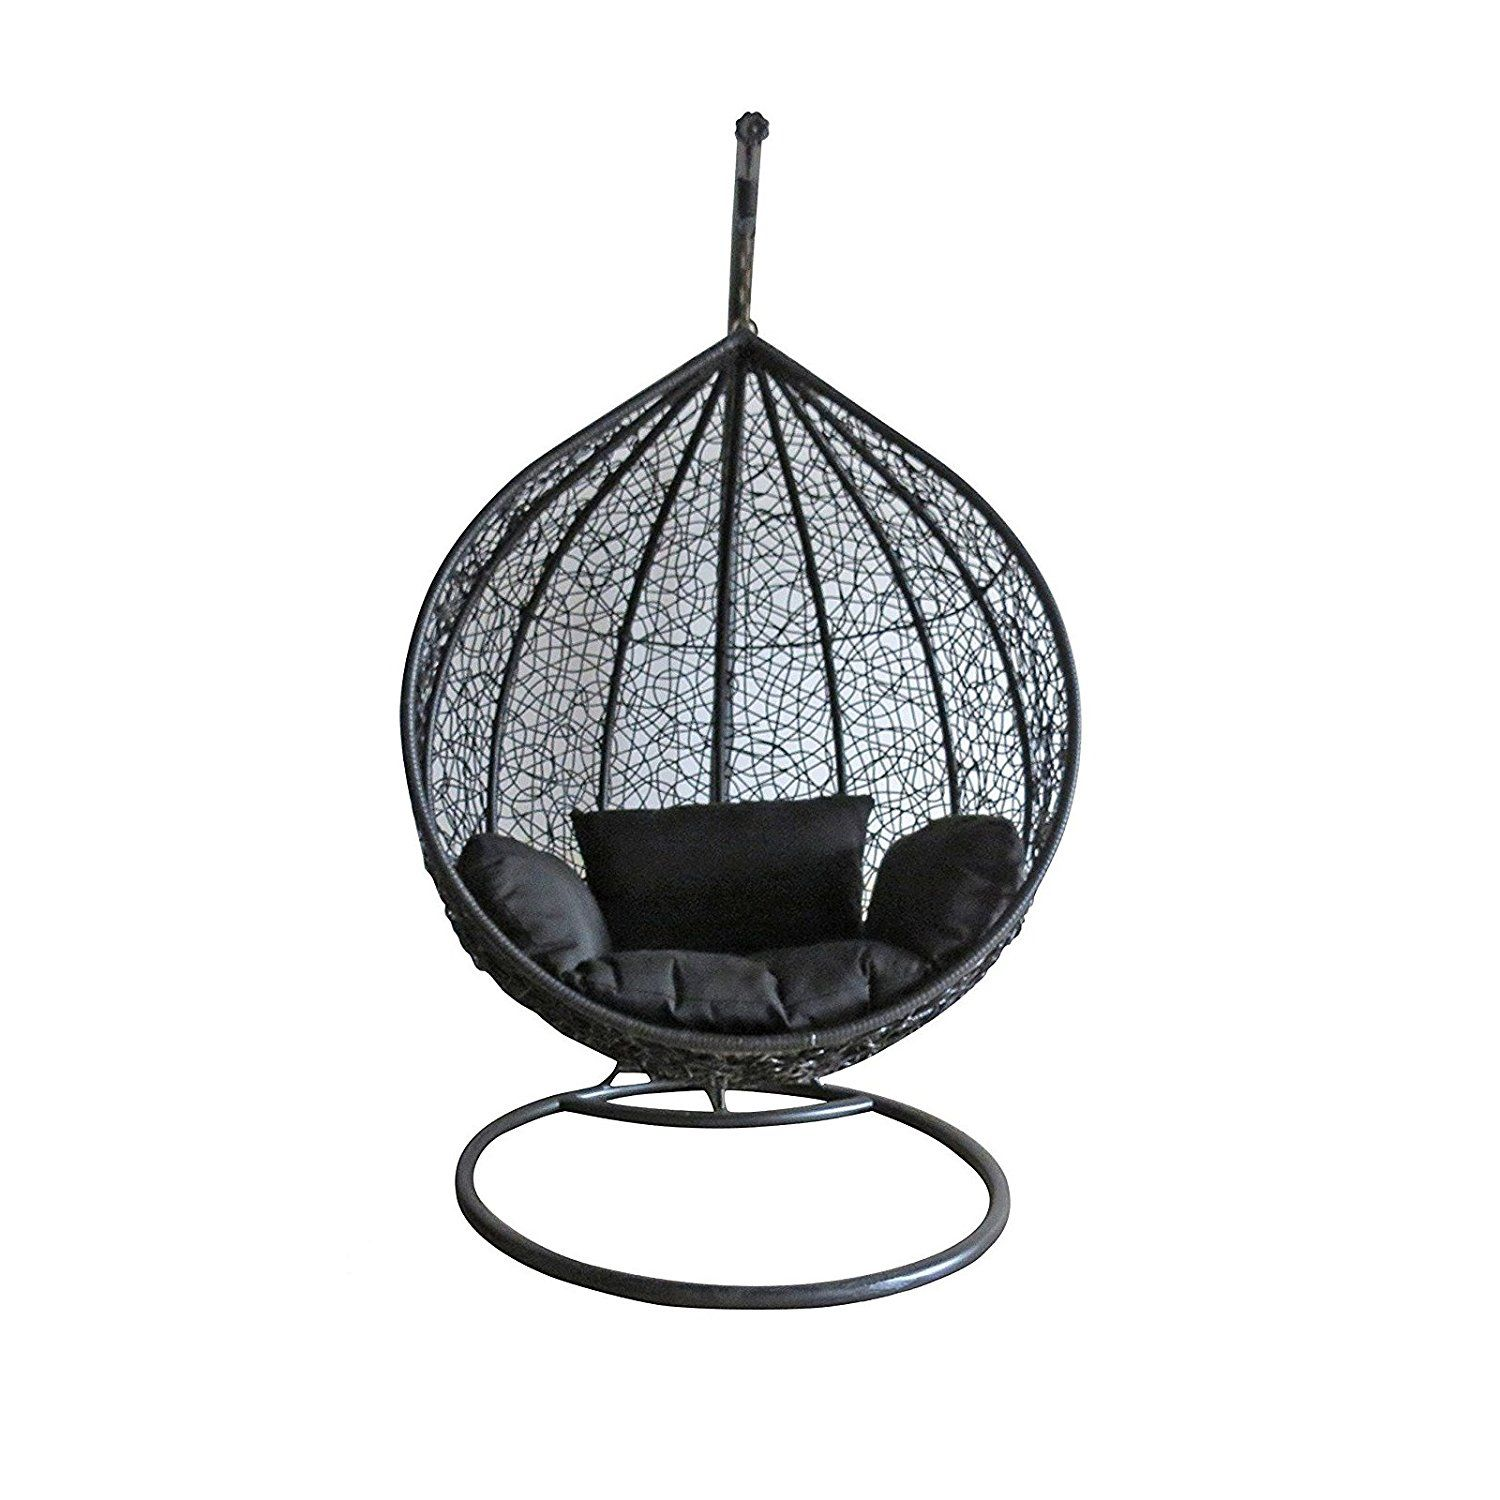 Dirty Pro ToolsTM Black Colour Rattan Swing Chair Outdoor Garden